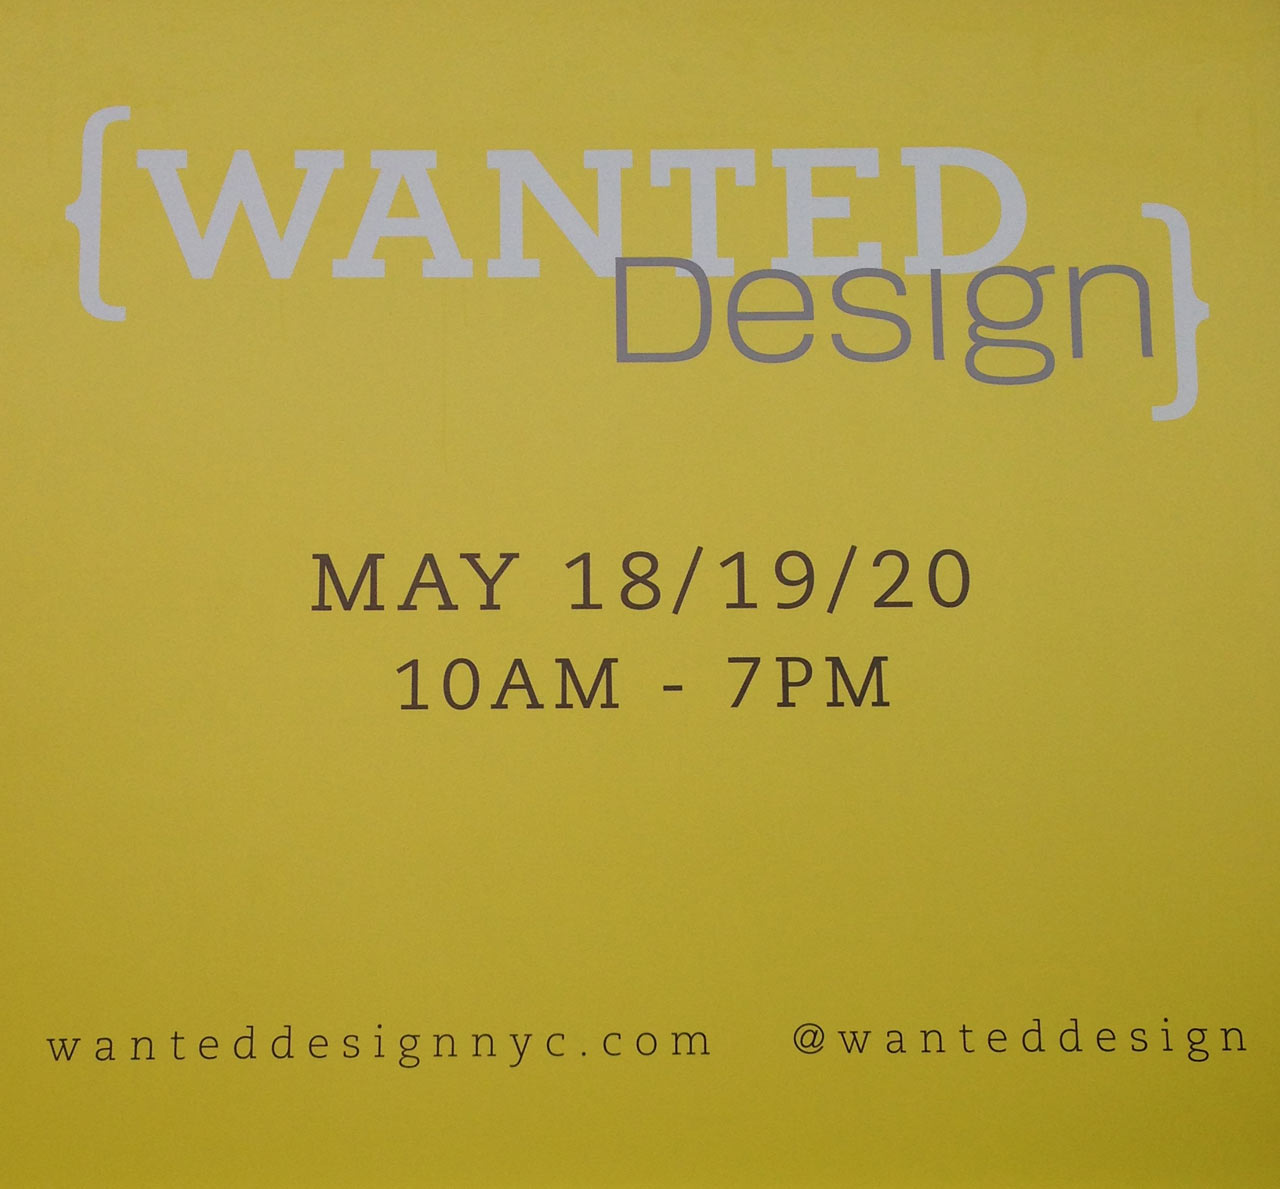 NYCxDesign 2013: WantedDesign Part 1